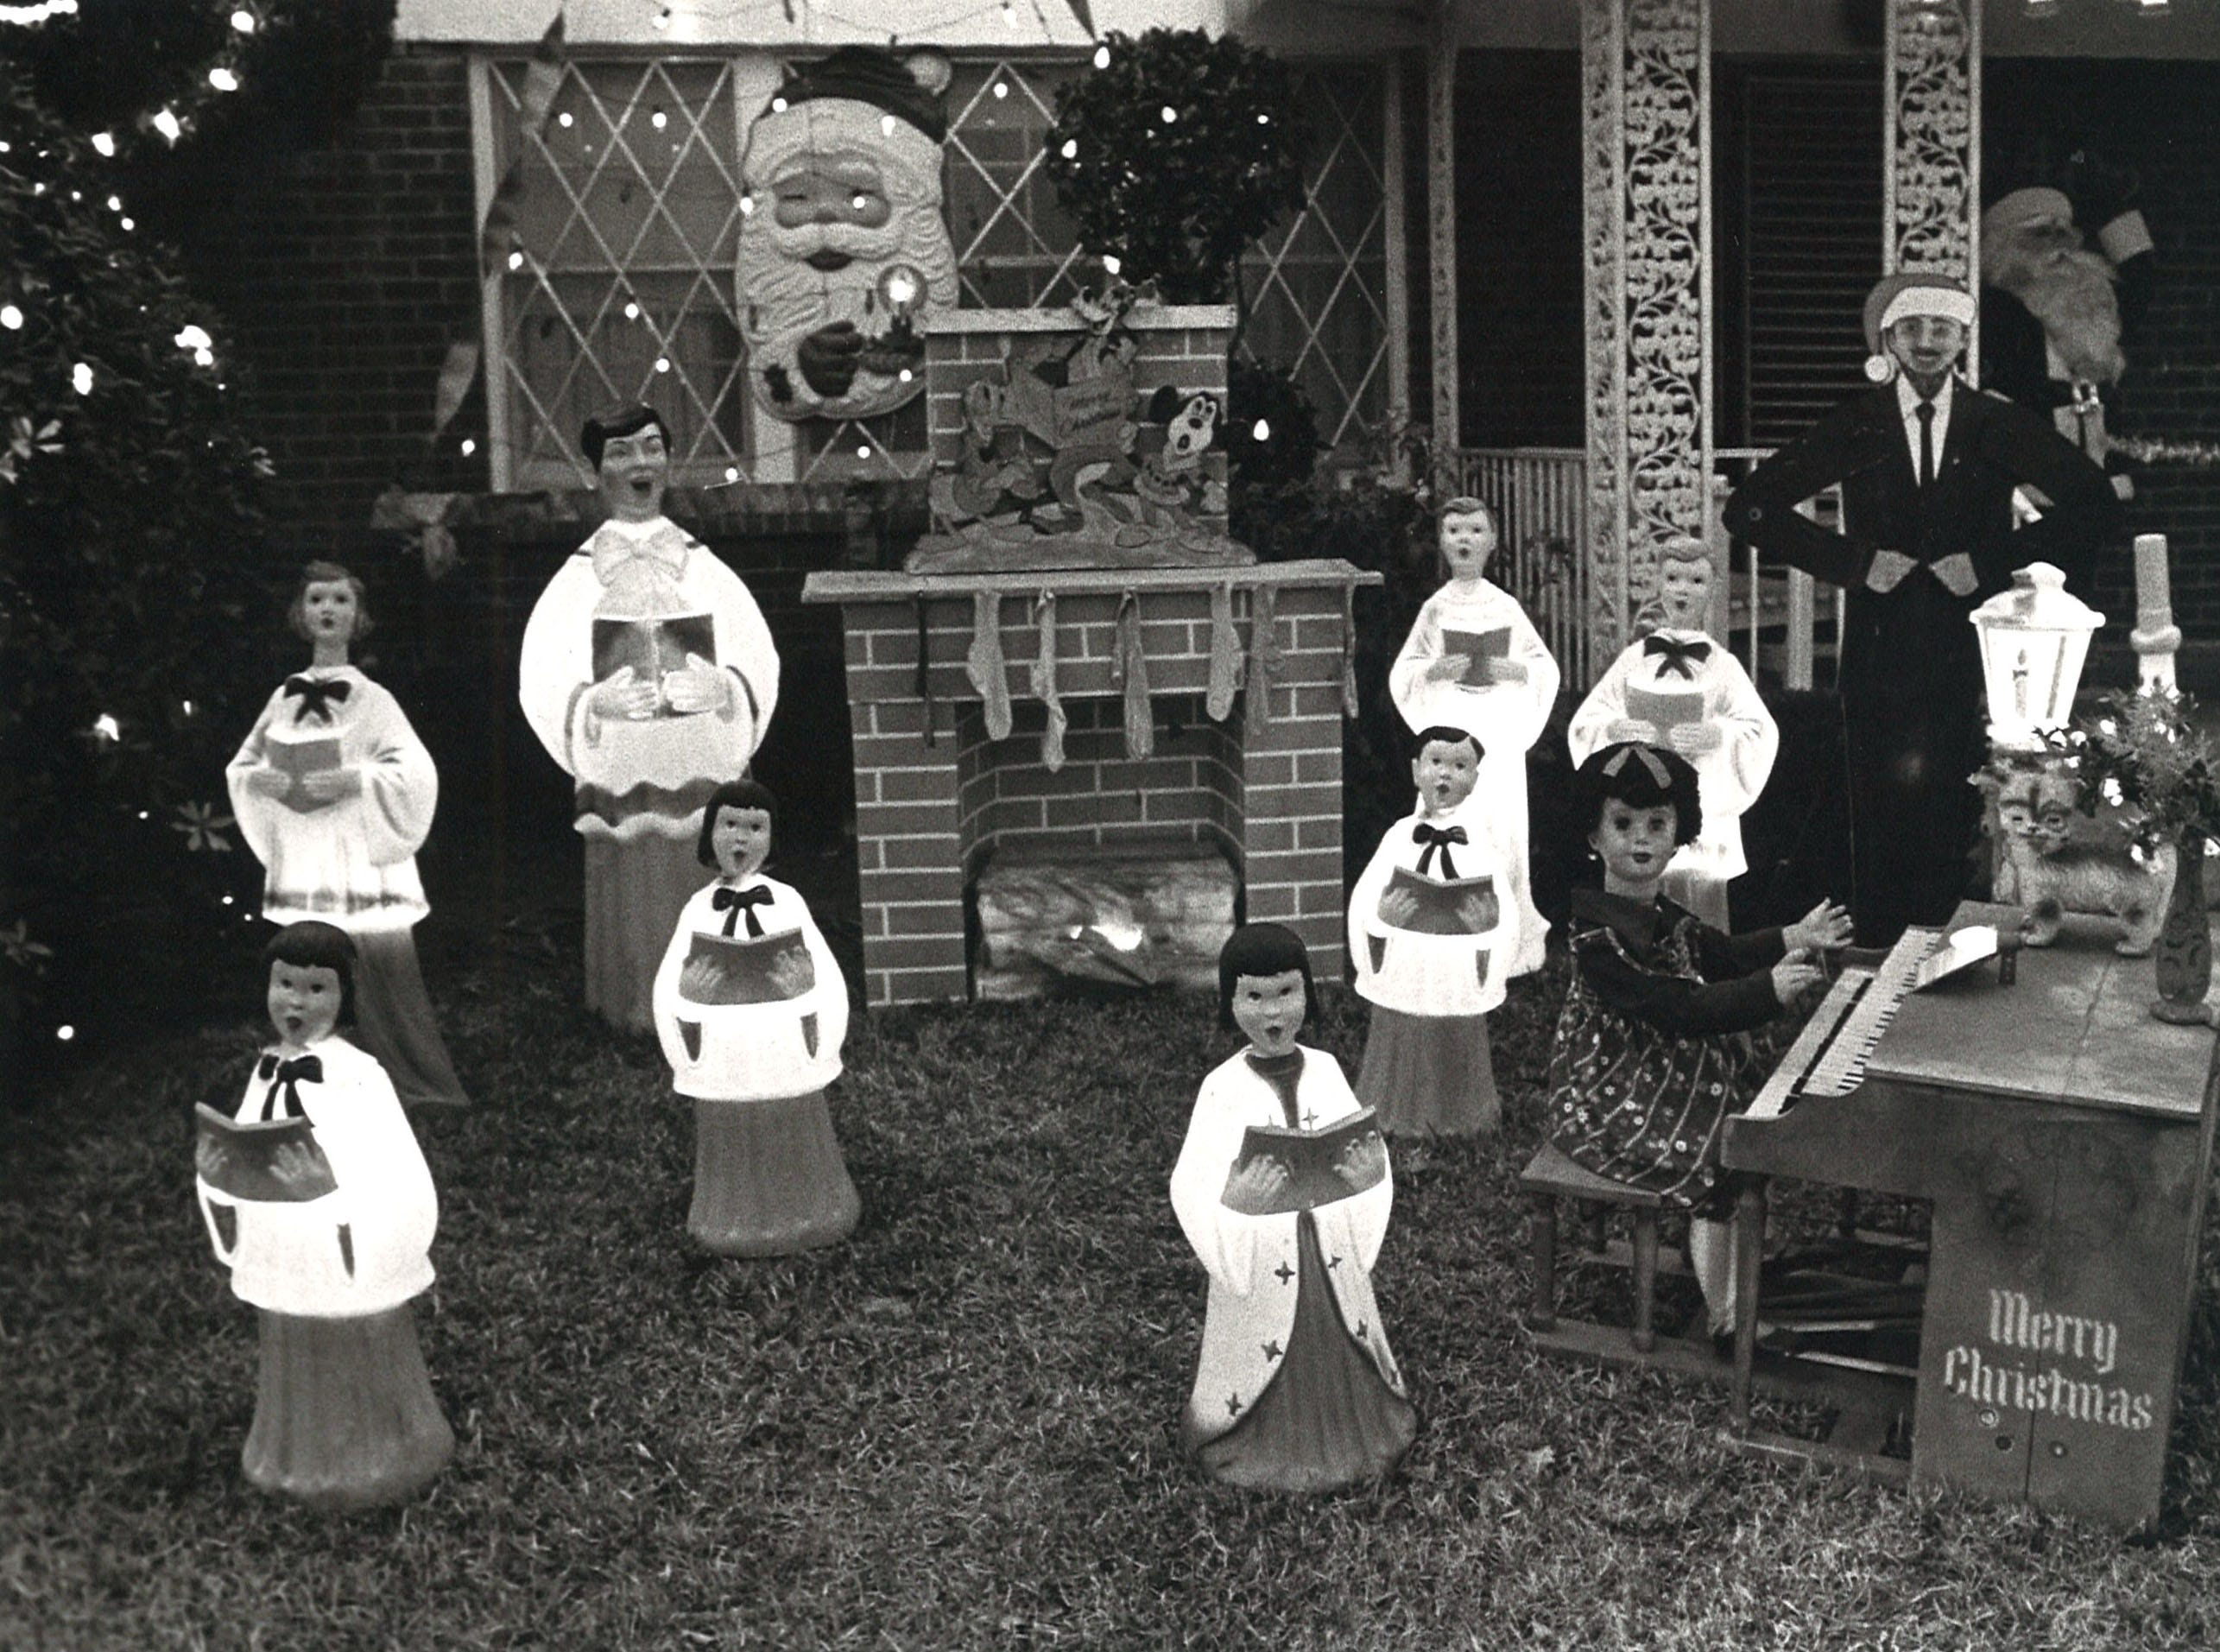 Part of Bill Aldridge's Christmas decorations at his house on the corner of Delaine and Doddridge, seen in this 1980 photo, included a choir.